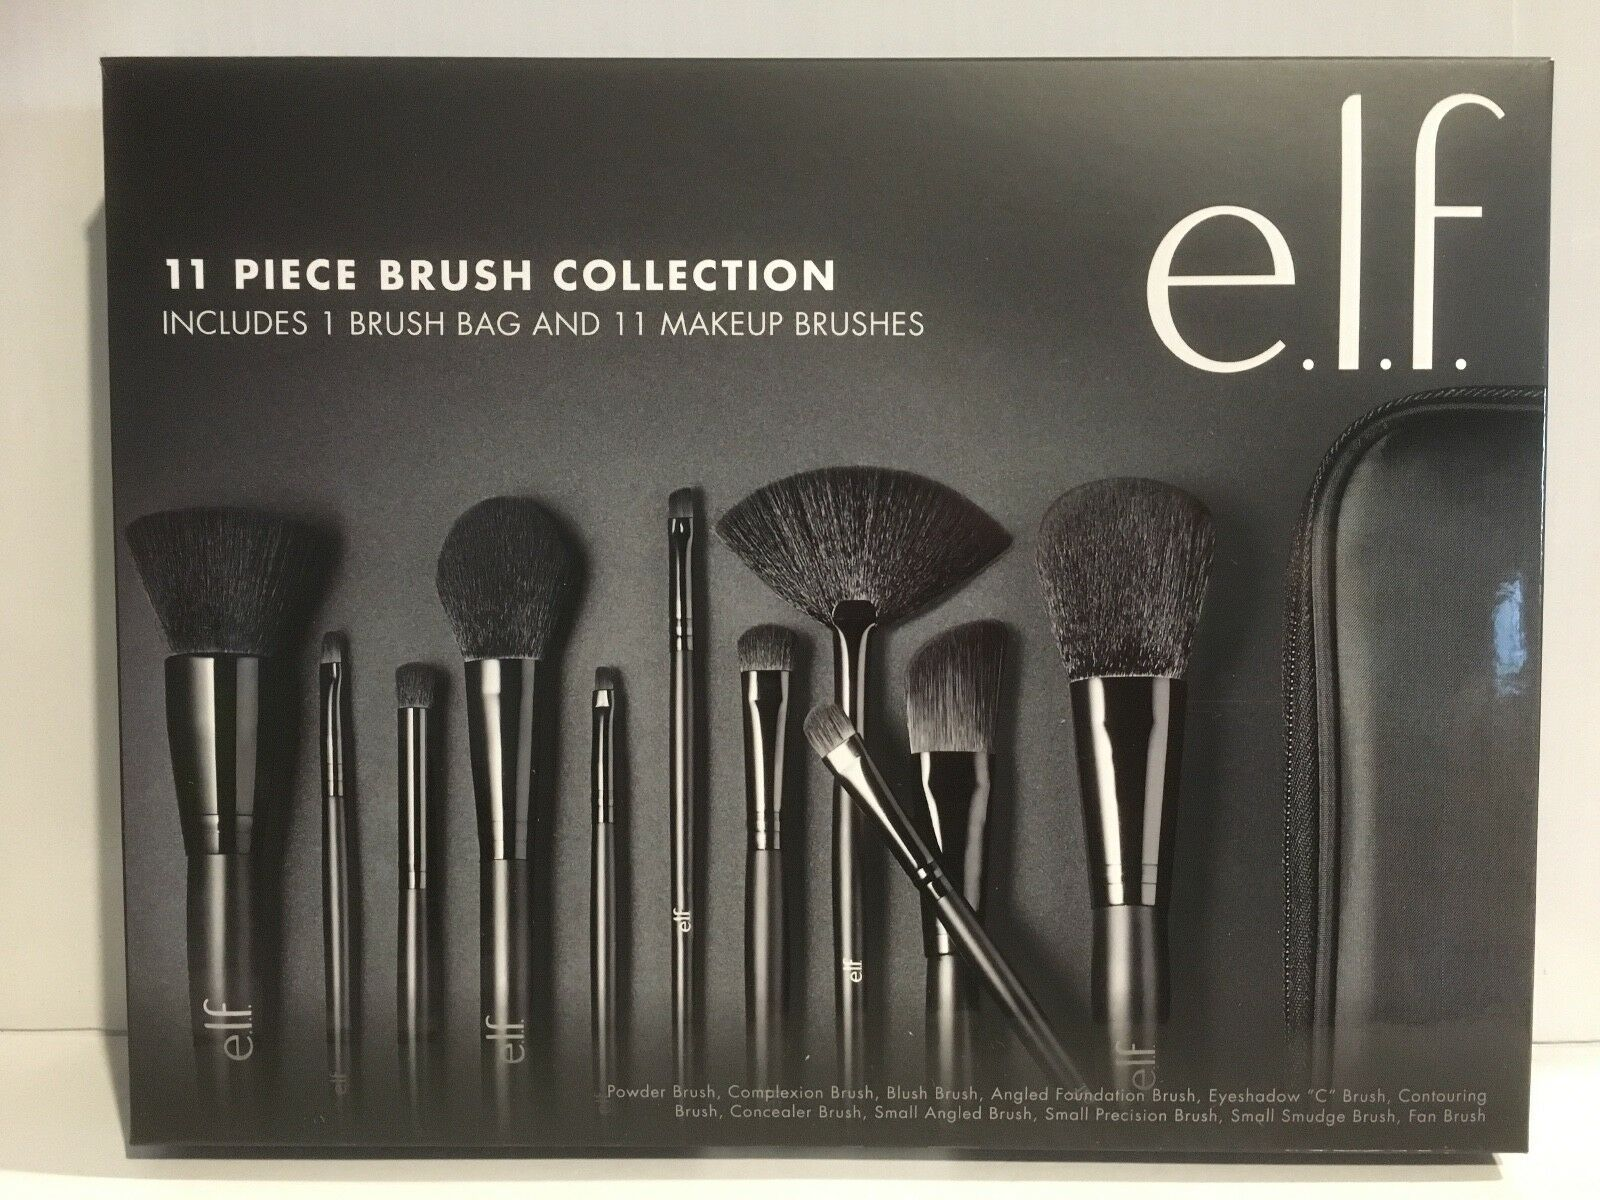 e.l.f. Studio 11 Piece Brush Collection, 12-ounce